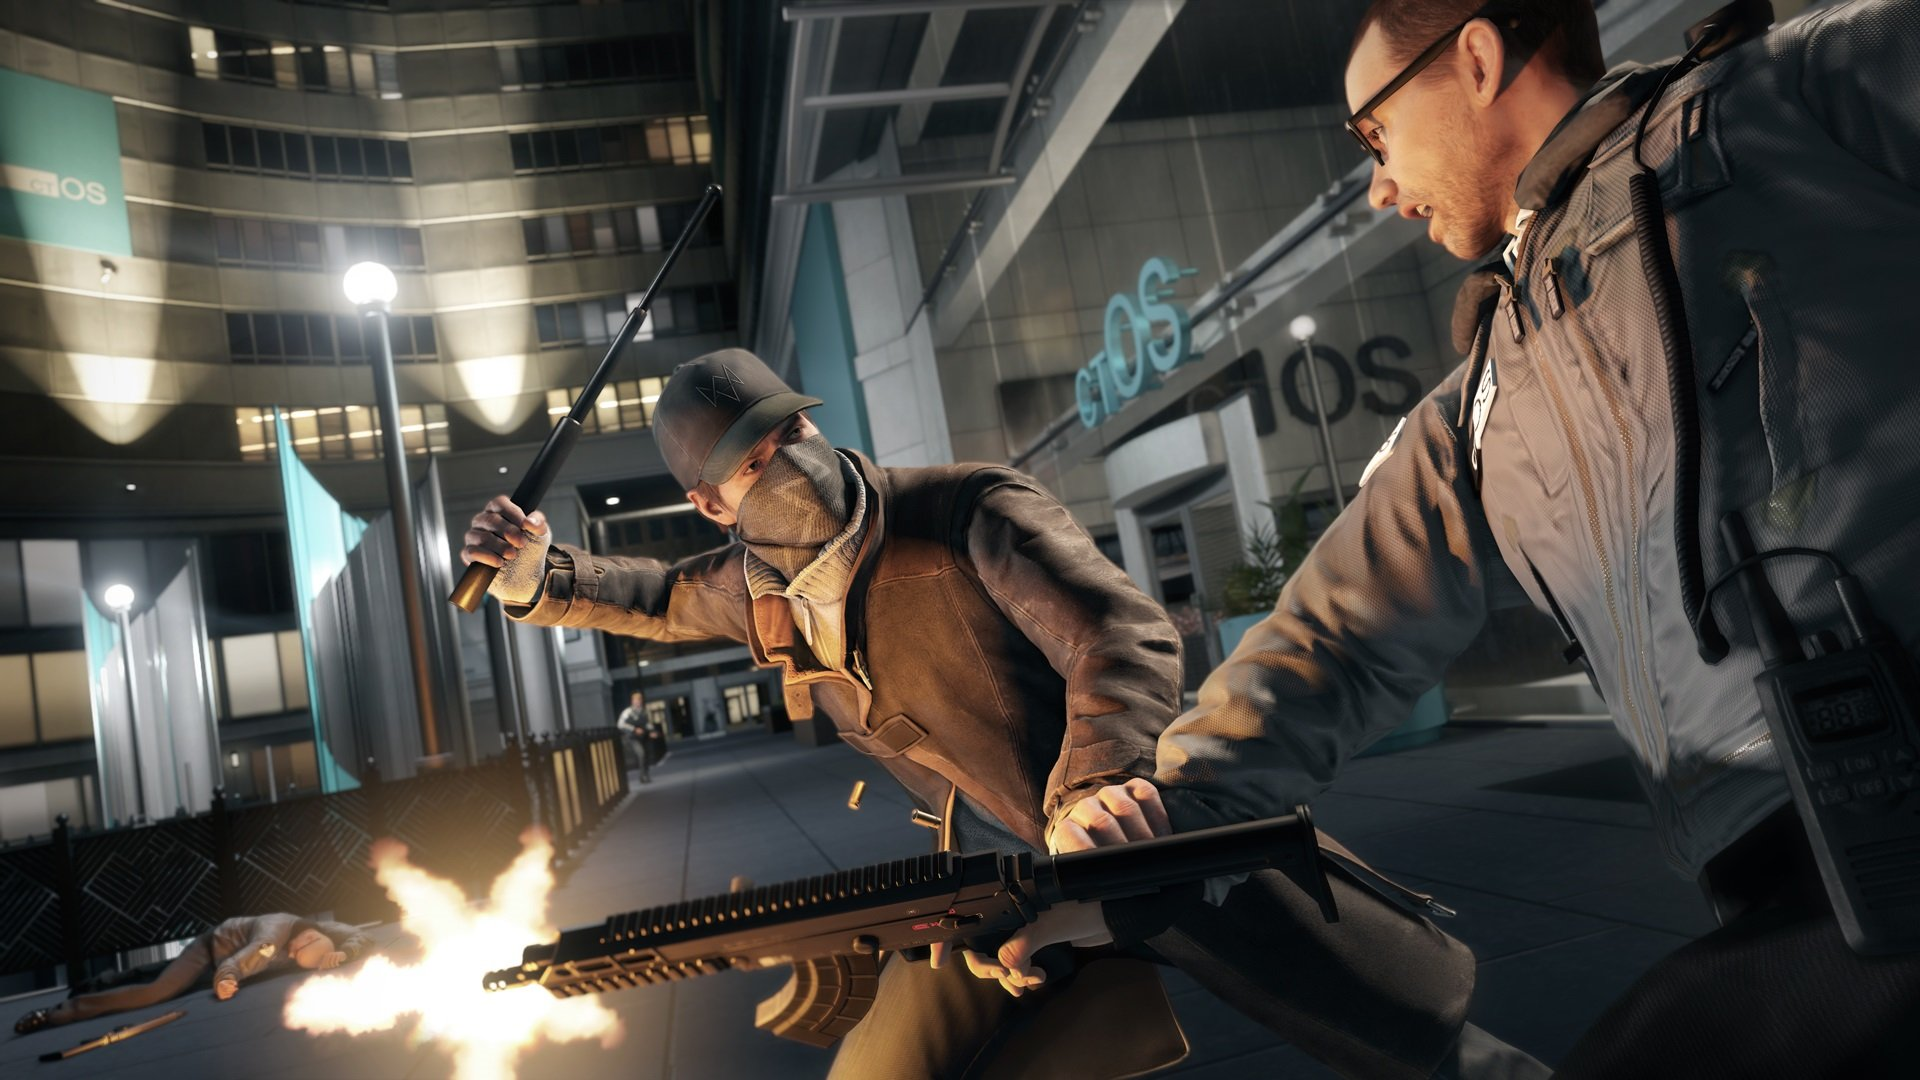 You can nab Watch Dogs for free on Uplay right now screenshot